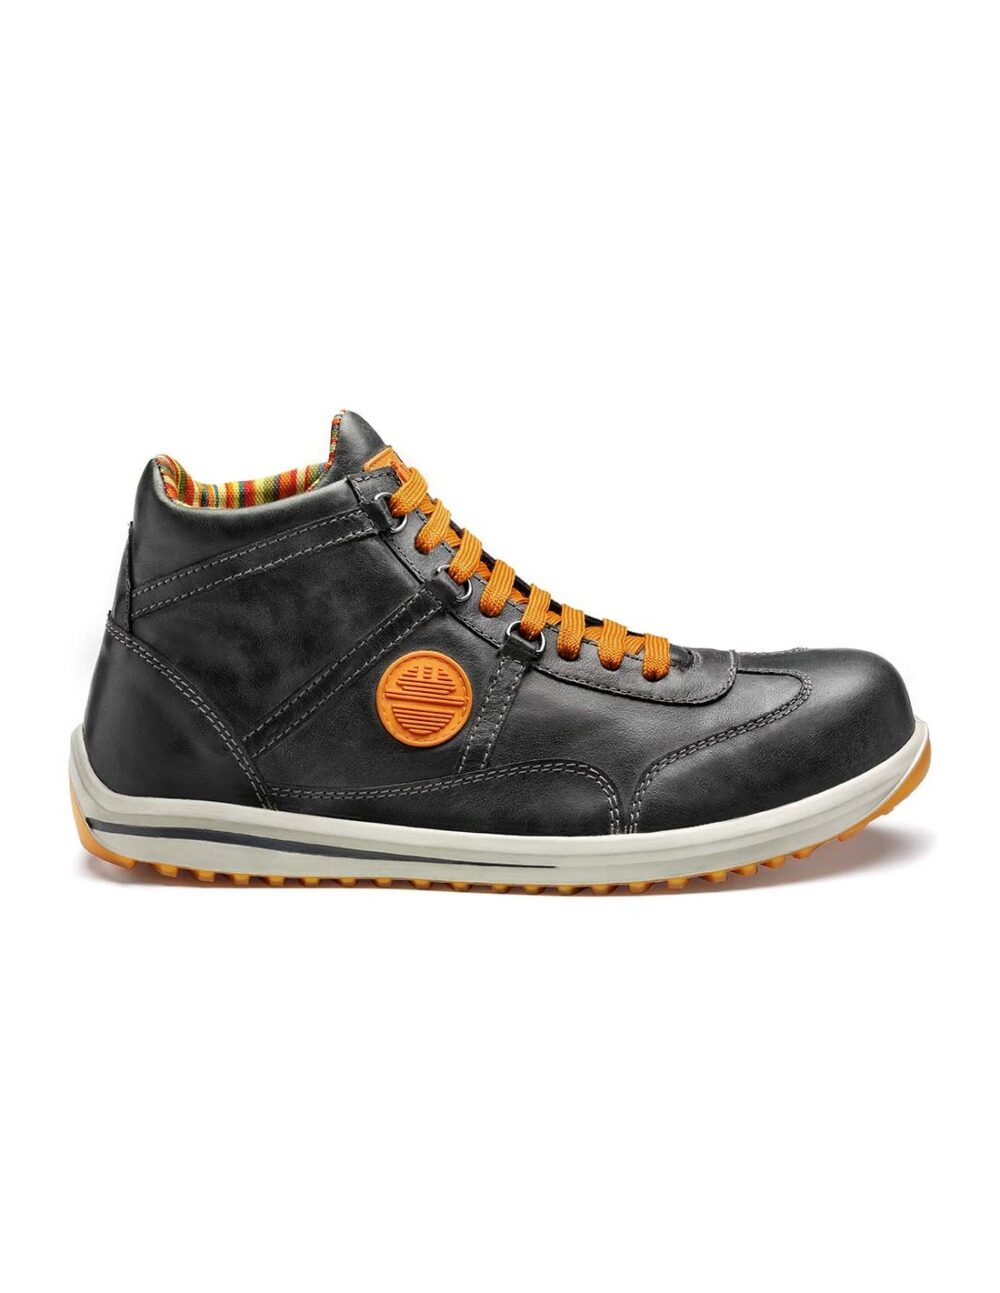 Stylish safety boot by by dike